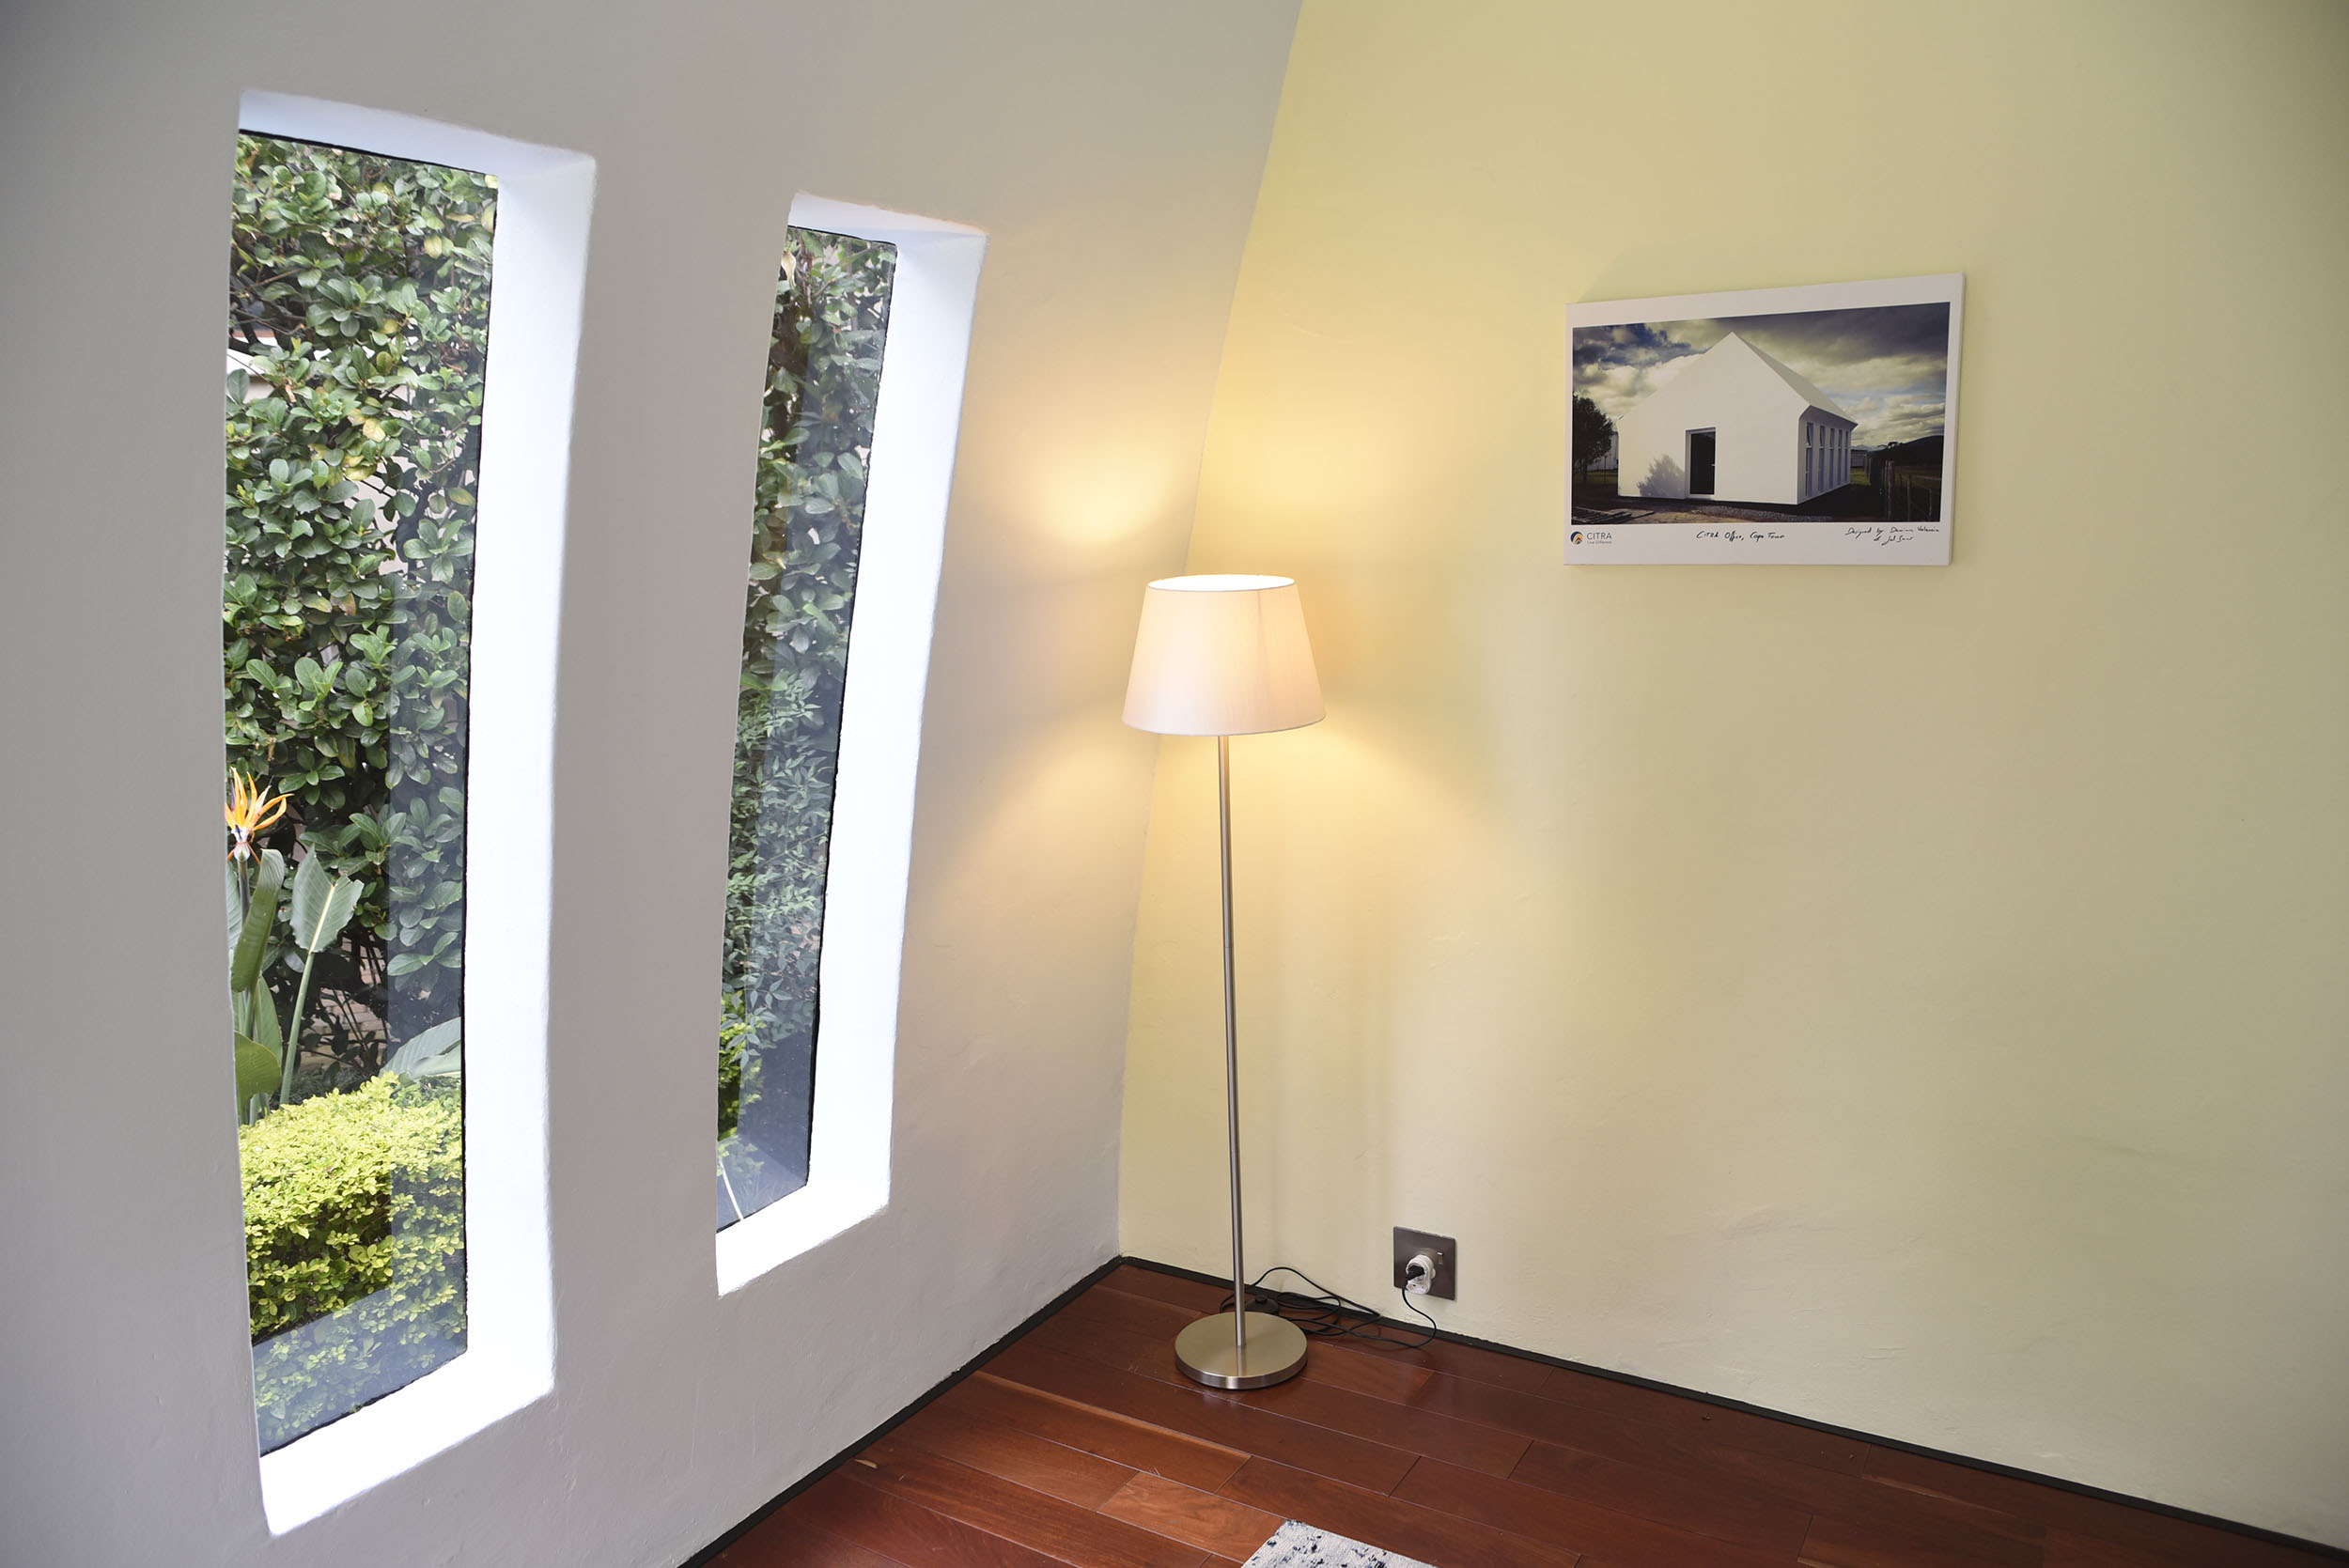 Ambassador's Cottage, inside, lamp, wooden floors and view of the garden